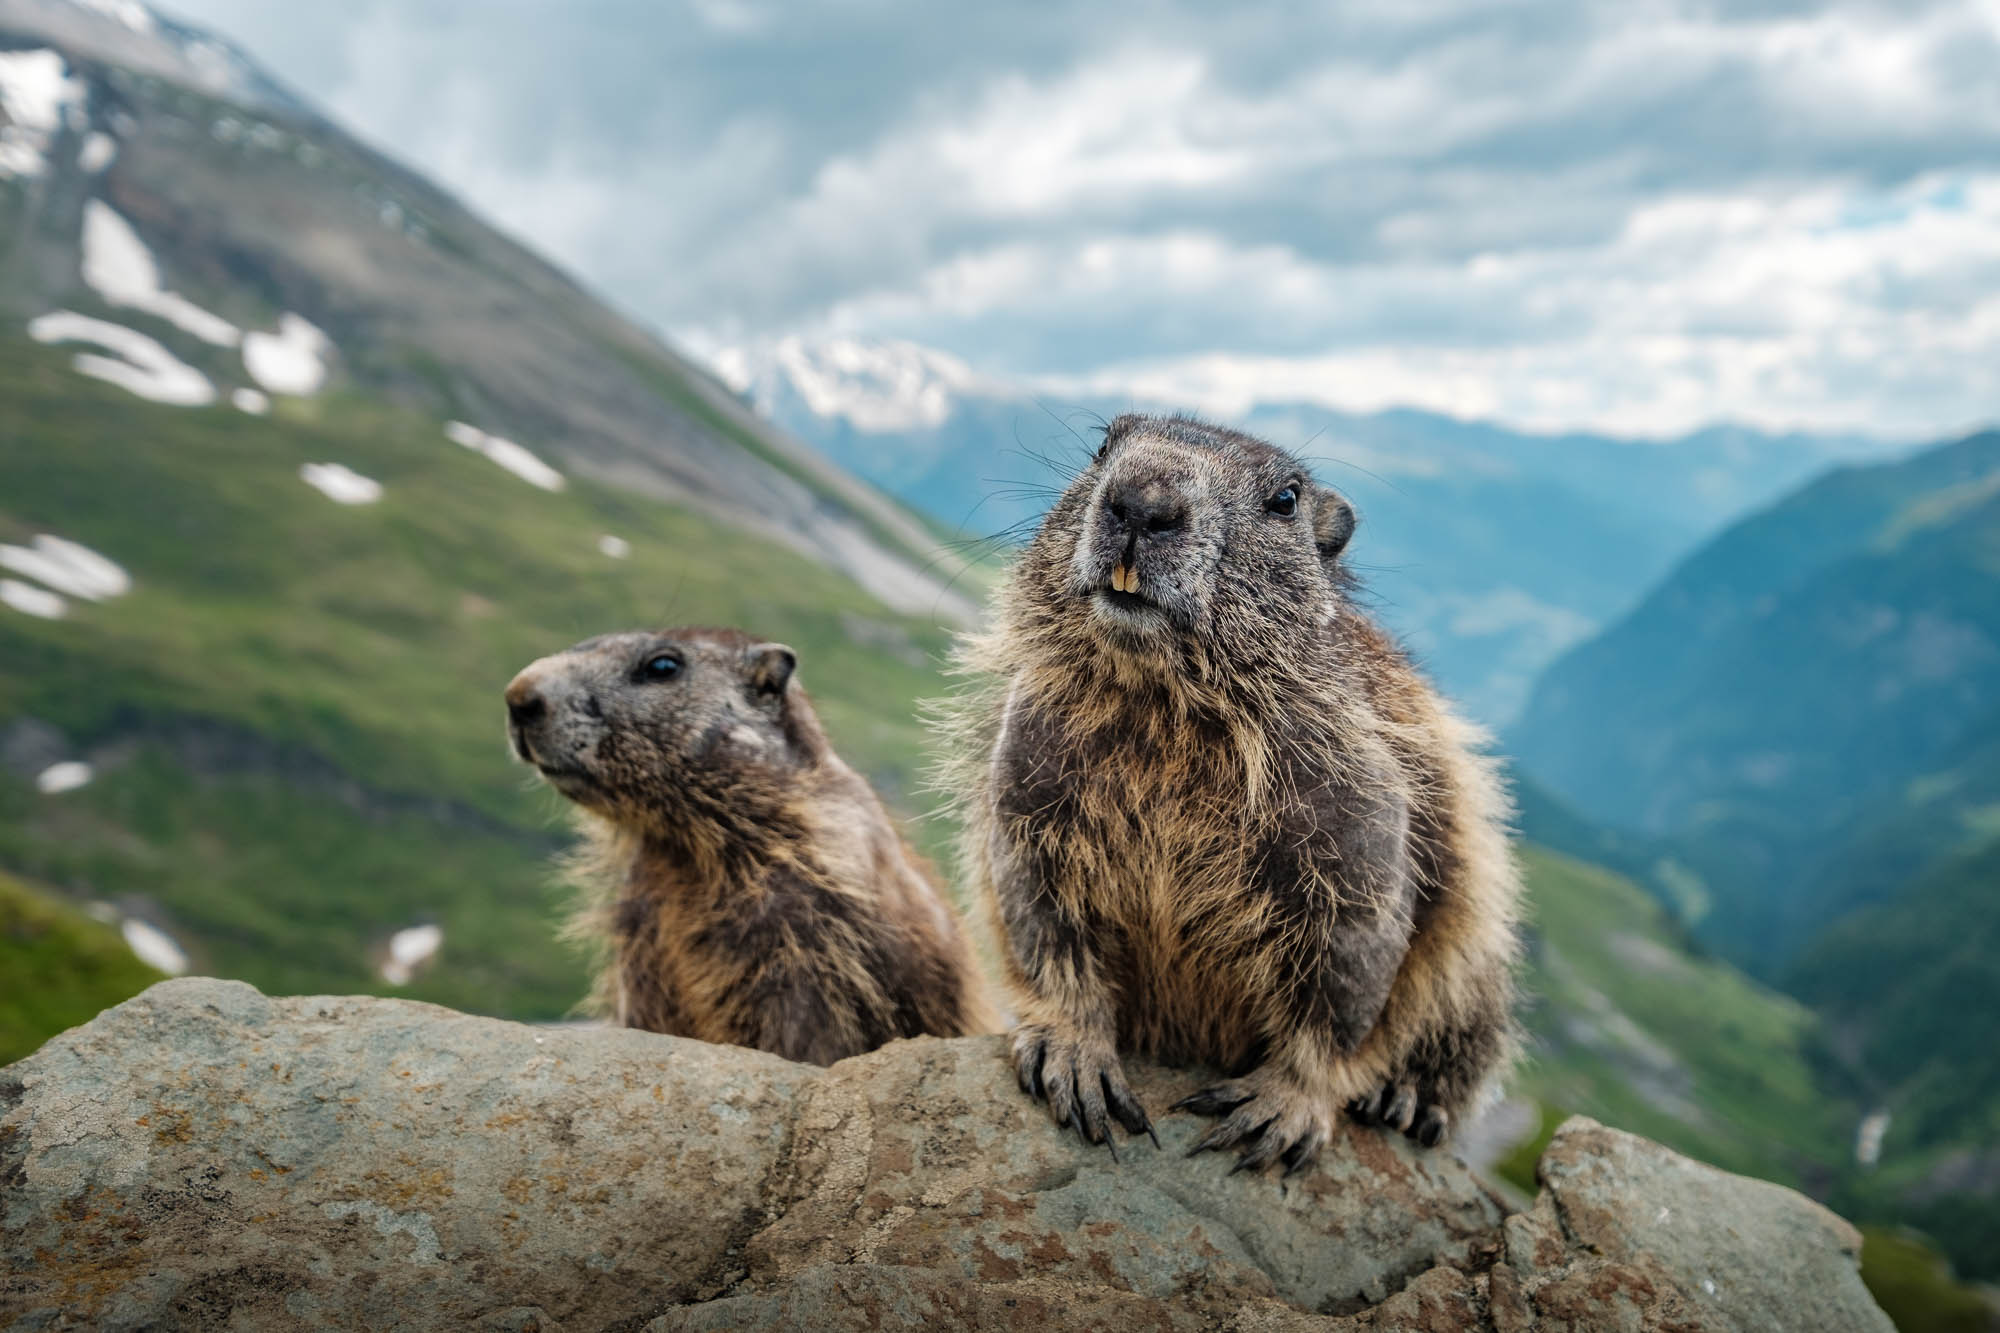 Marmots photographed with a wide angle lens near Grossglockner in Austria.